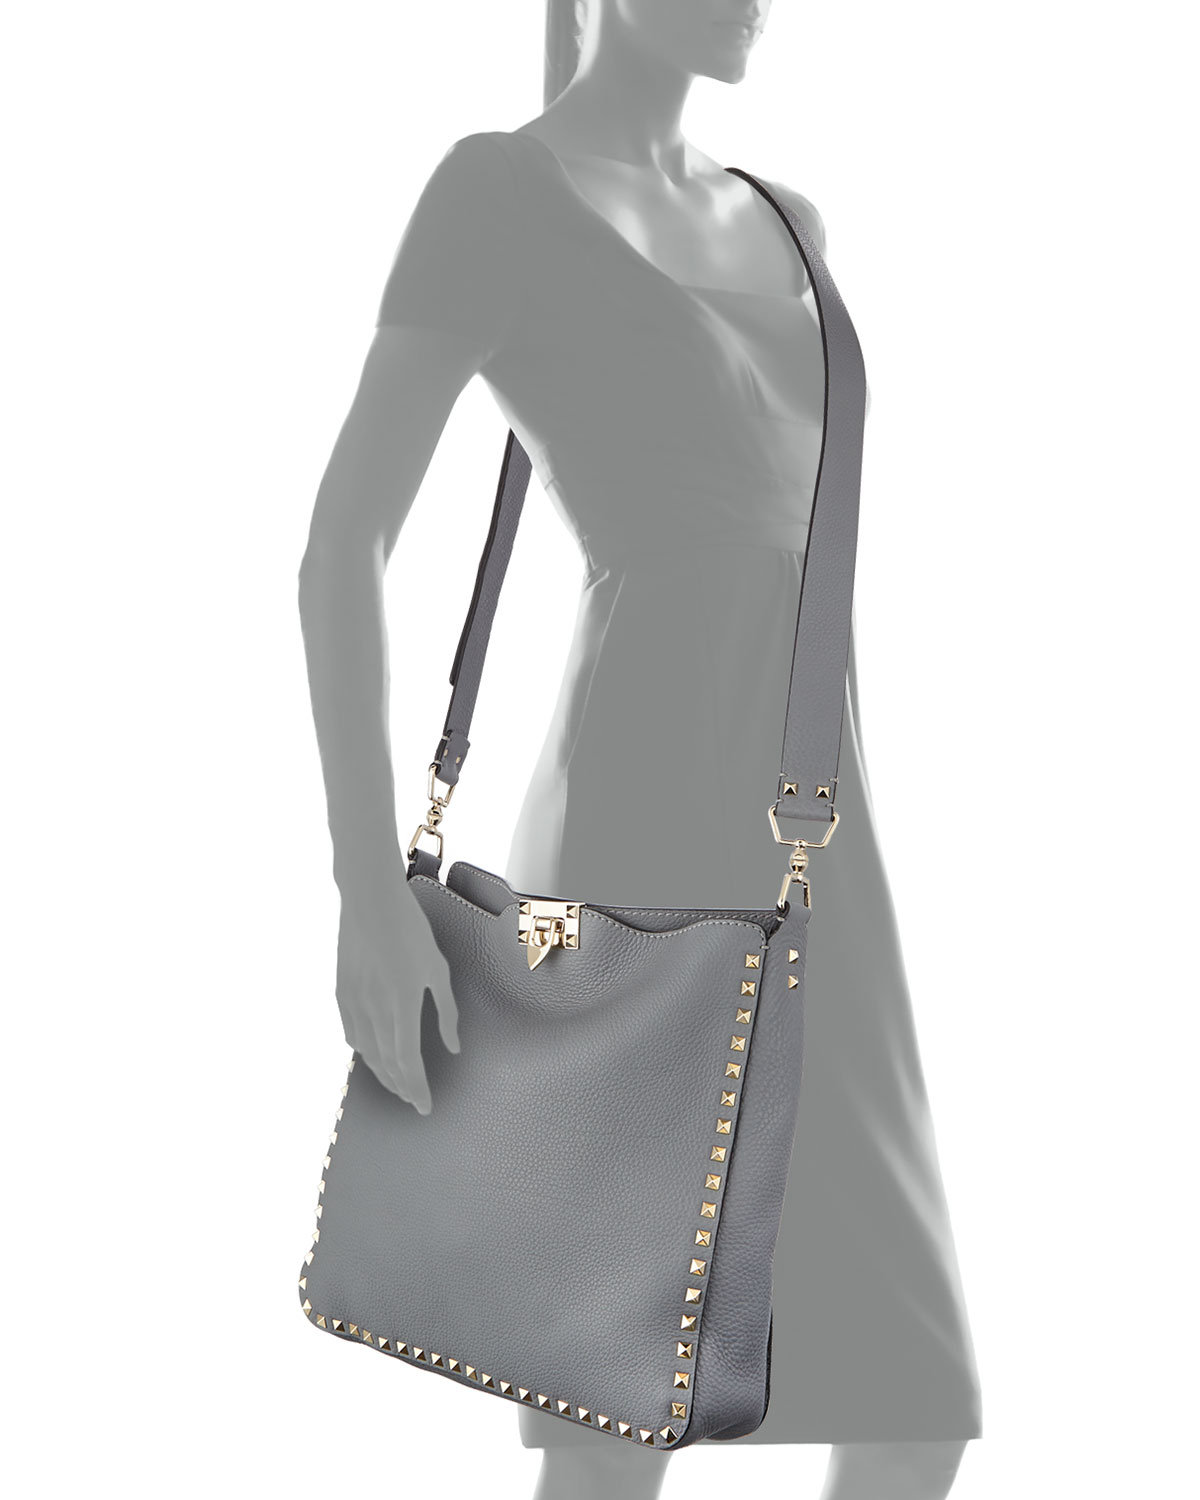 cdc4eb1a89 Valentino Rockstud Pebbled Leather Messenger Bag in Gray - Lyst